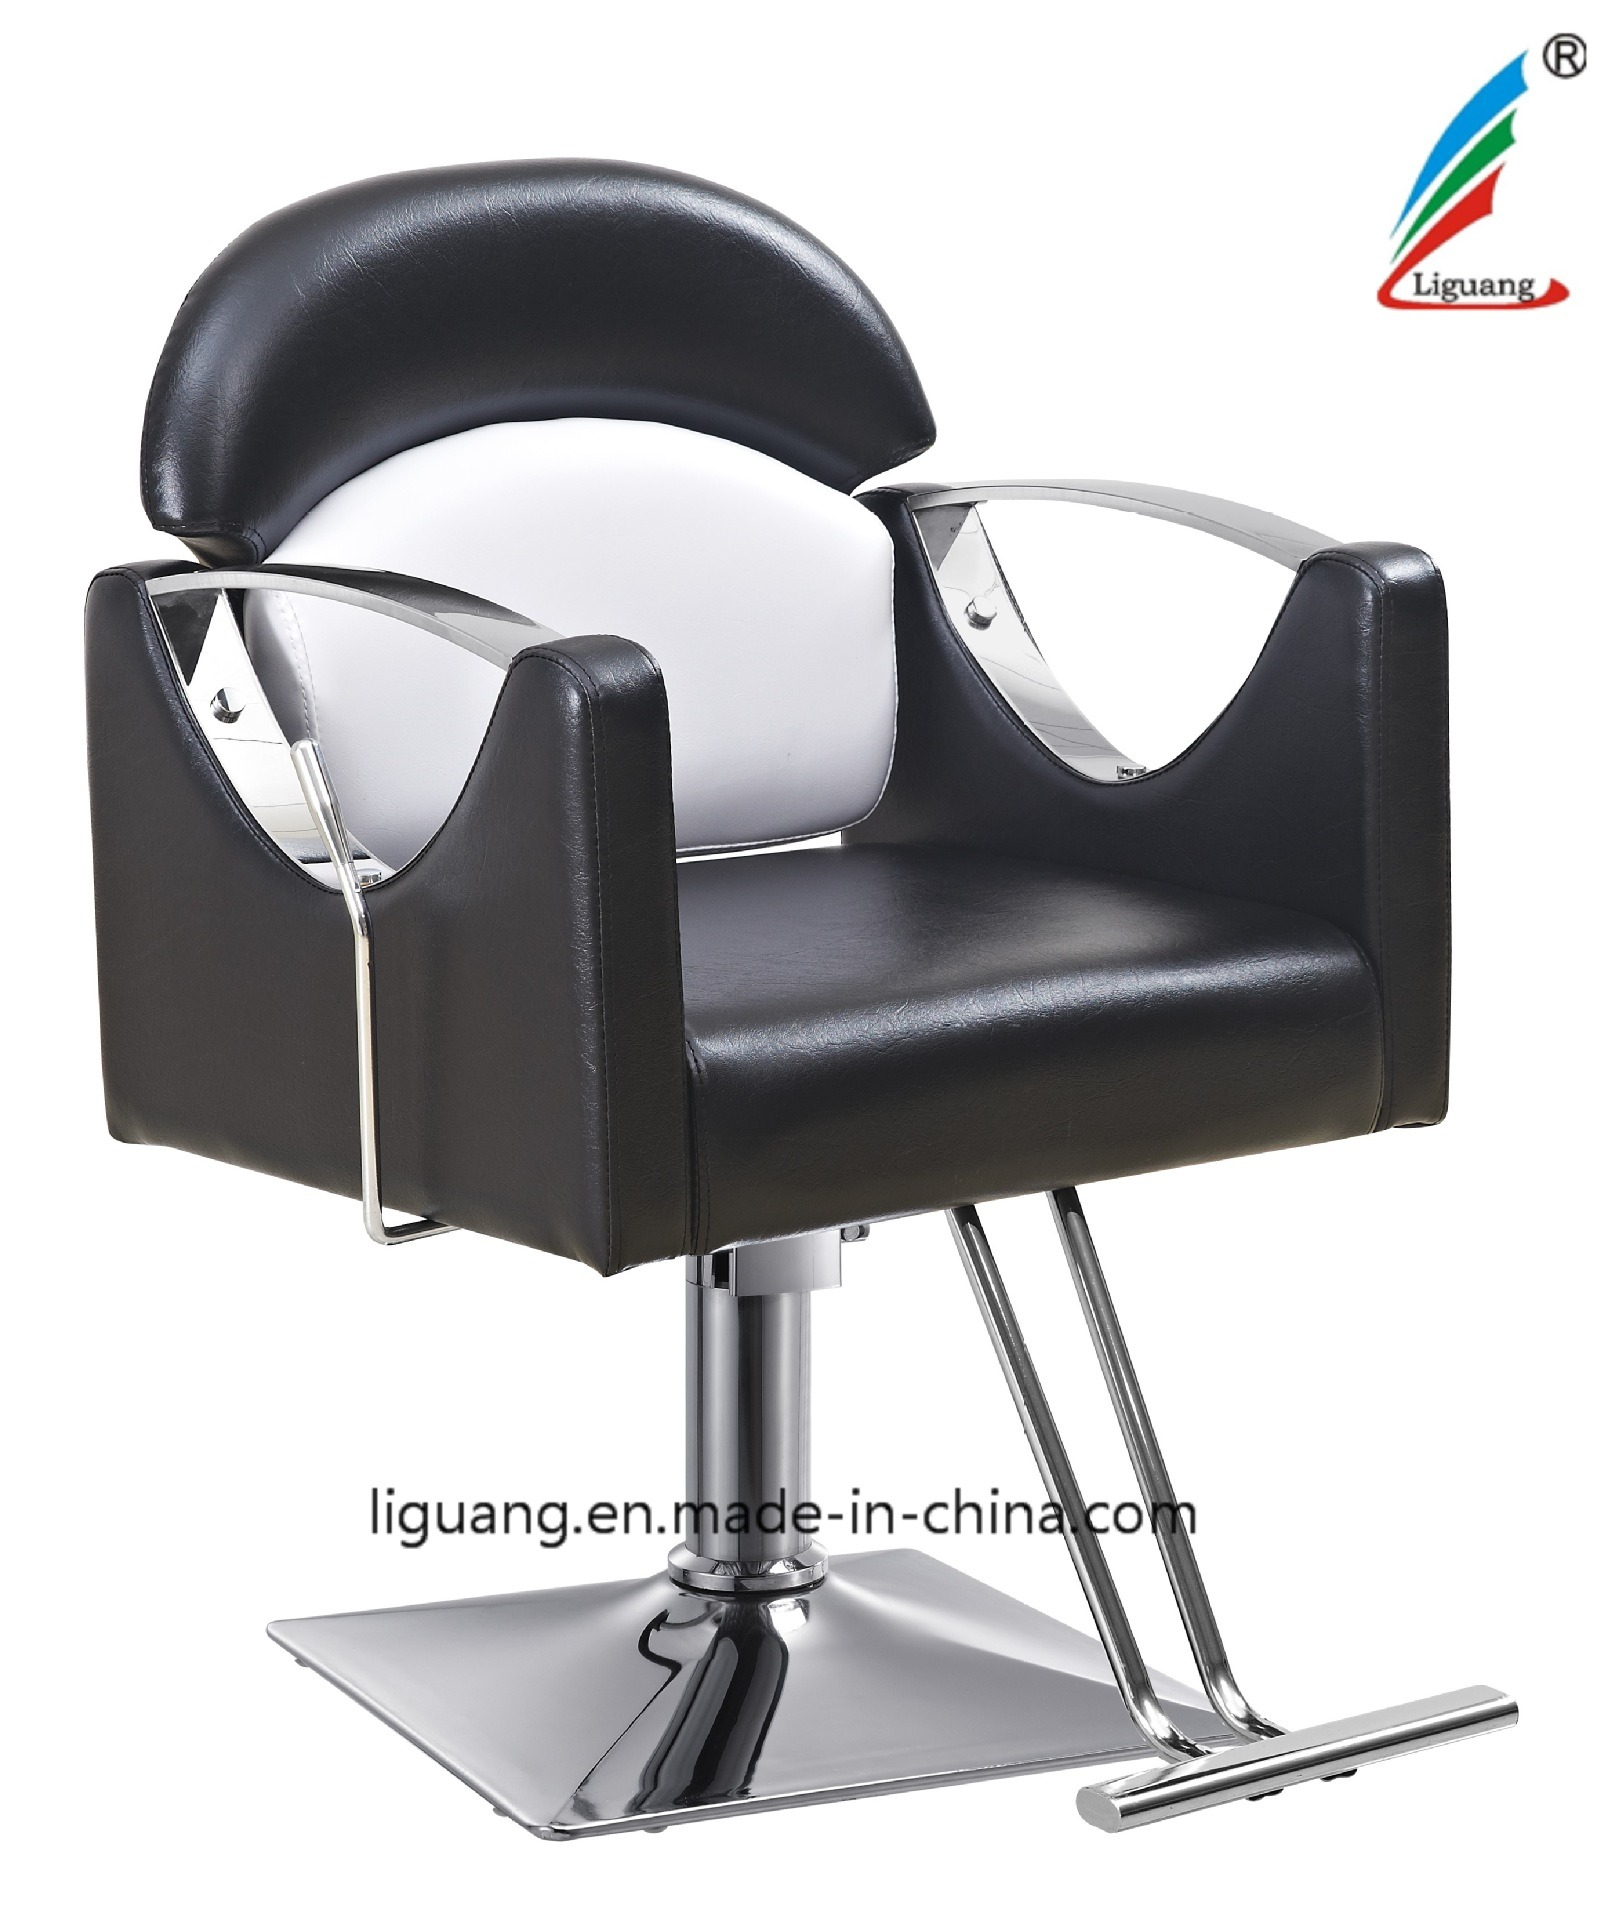 Beauty Salon Chair Hot Item Hot Sale Styling Hair Chair Salon Furniture Beauty Salon Equipment